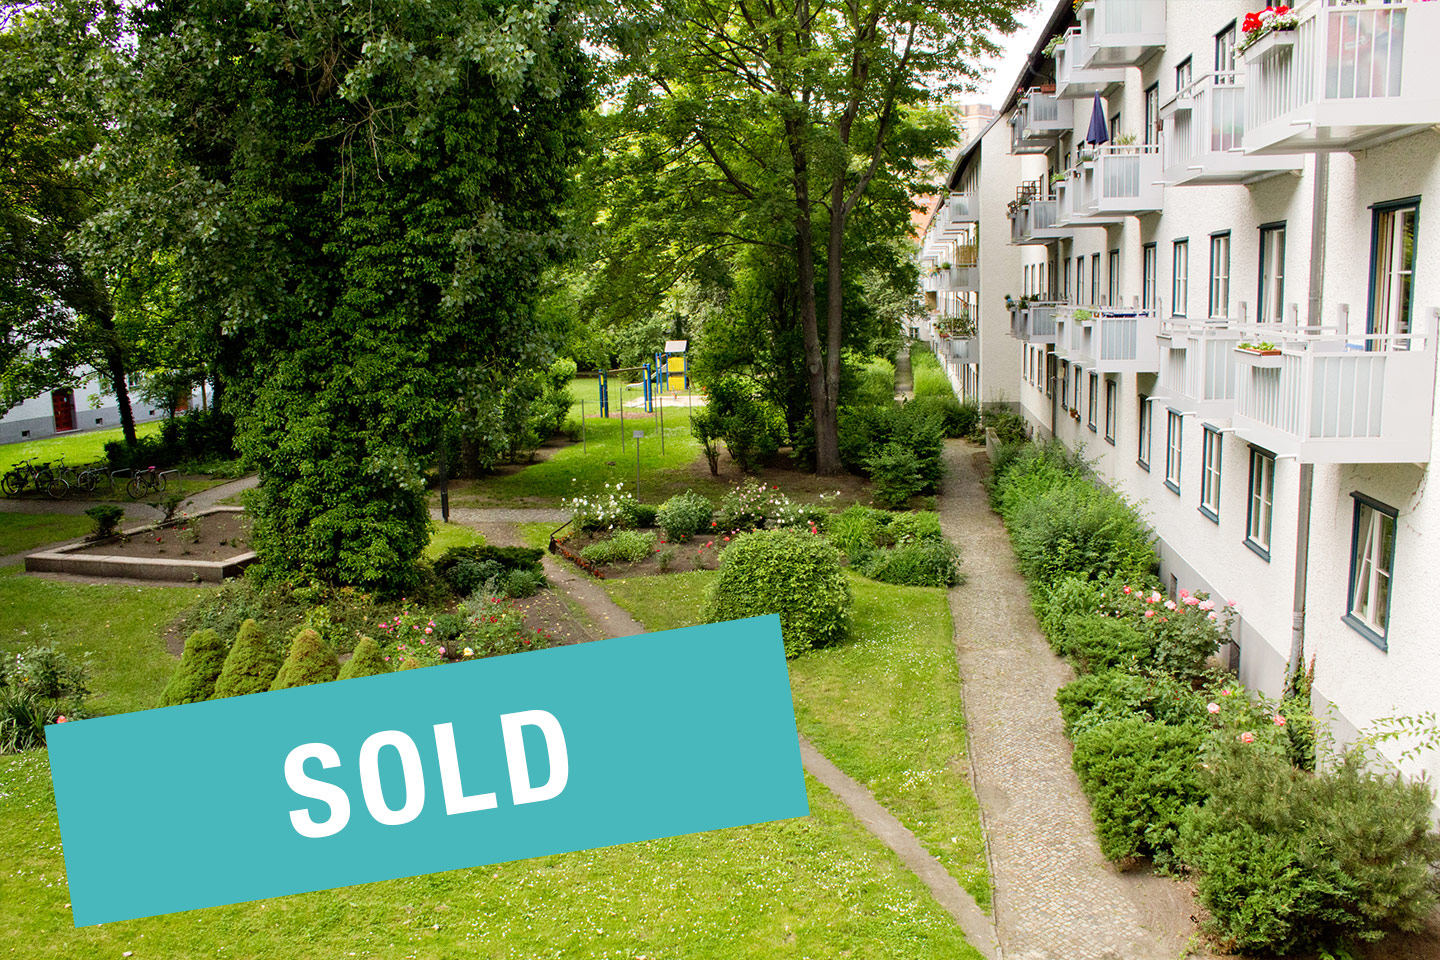 Parkviertel: sold